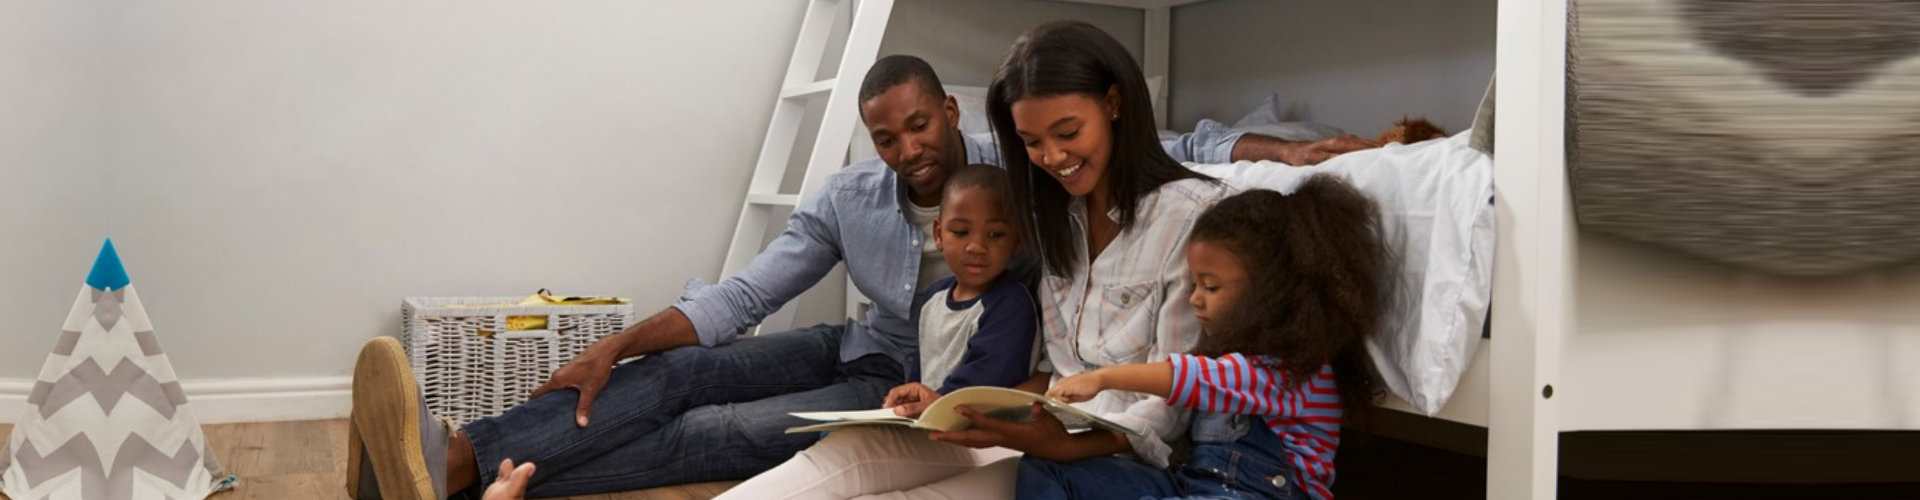 couple with two kids reading